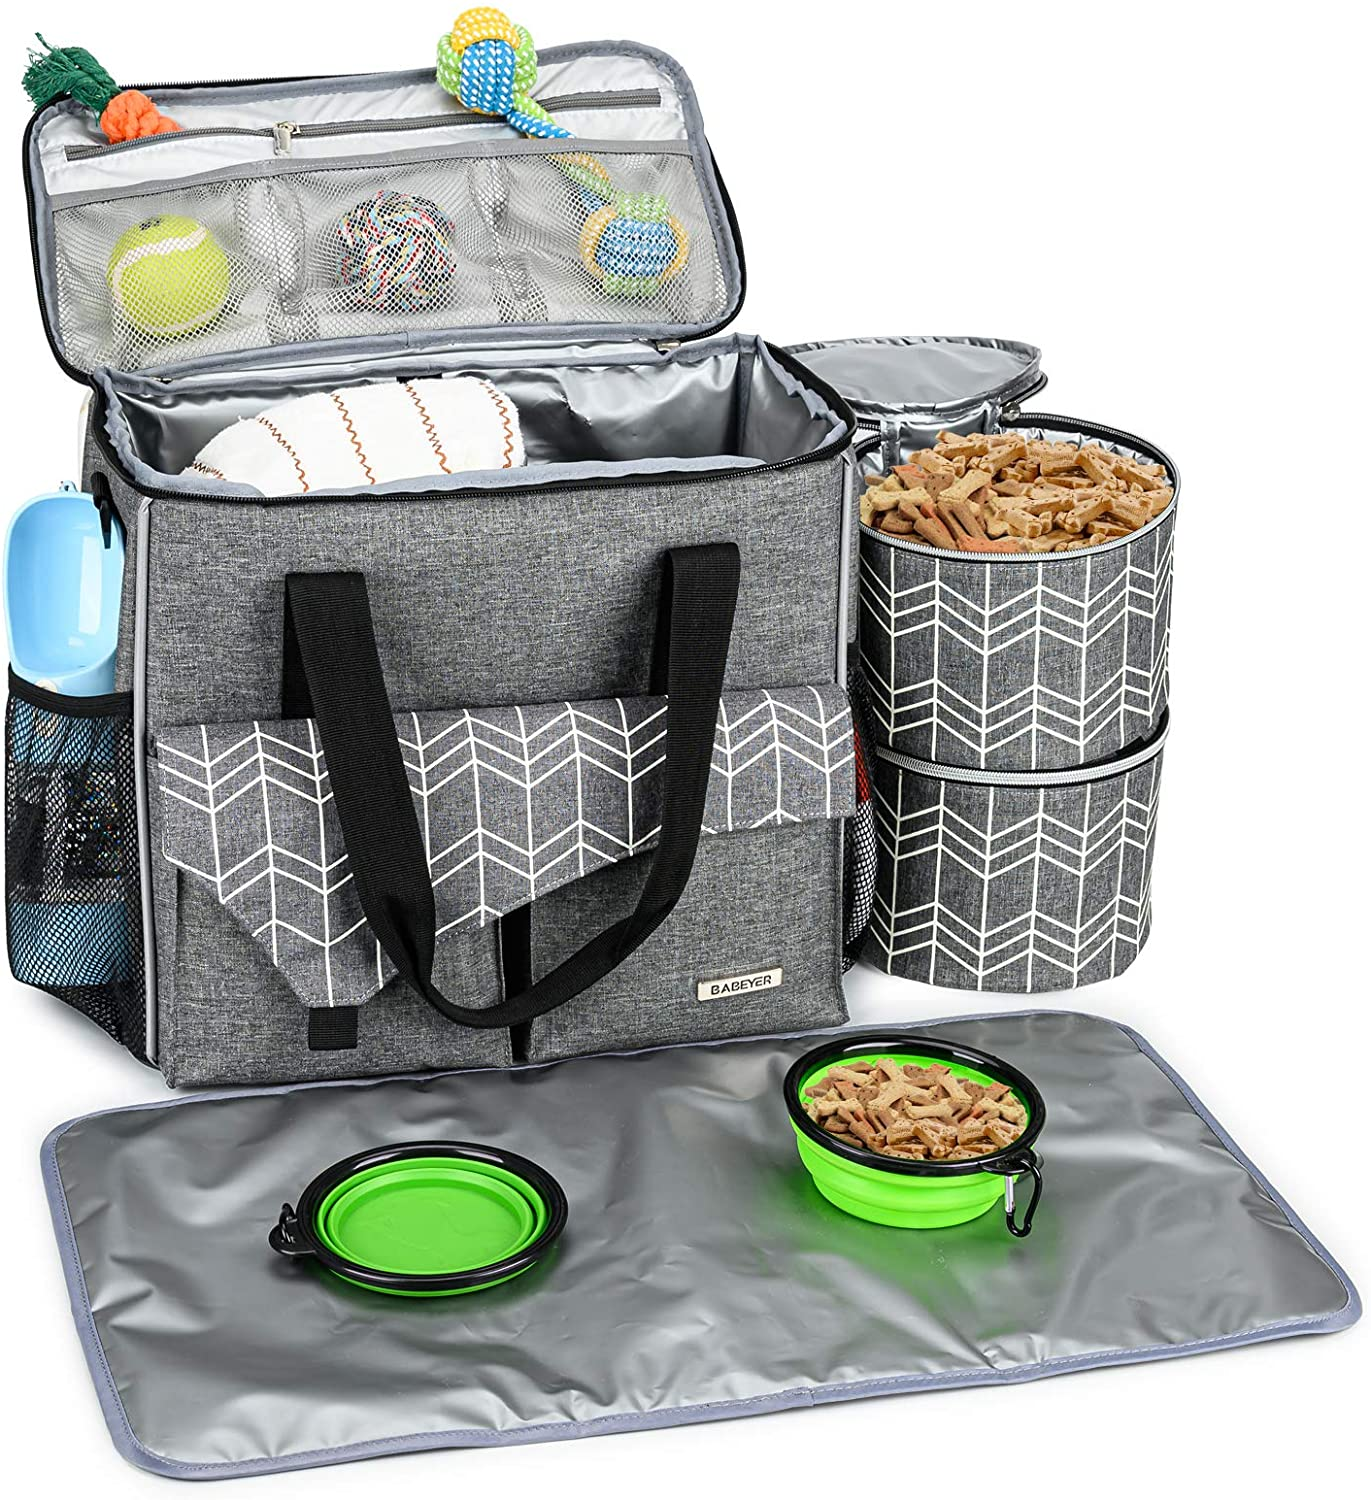 BABEYER Dog Travel Bag with Multi-Function Pockets with Food Container Bag and Collapsible Bowl Included, Perfect for Dogs on The Go